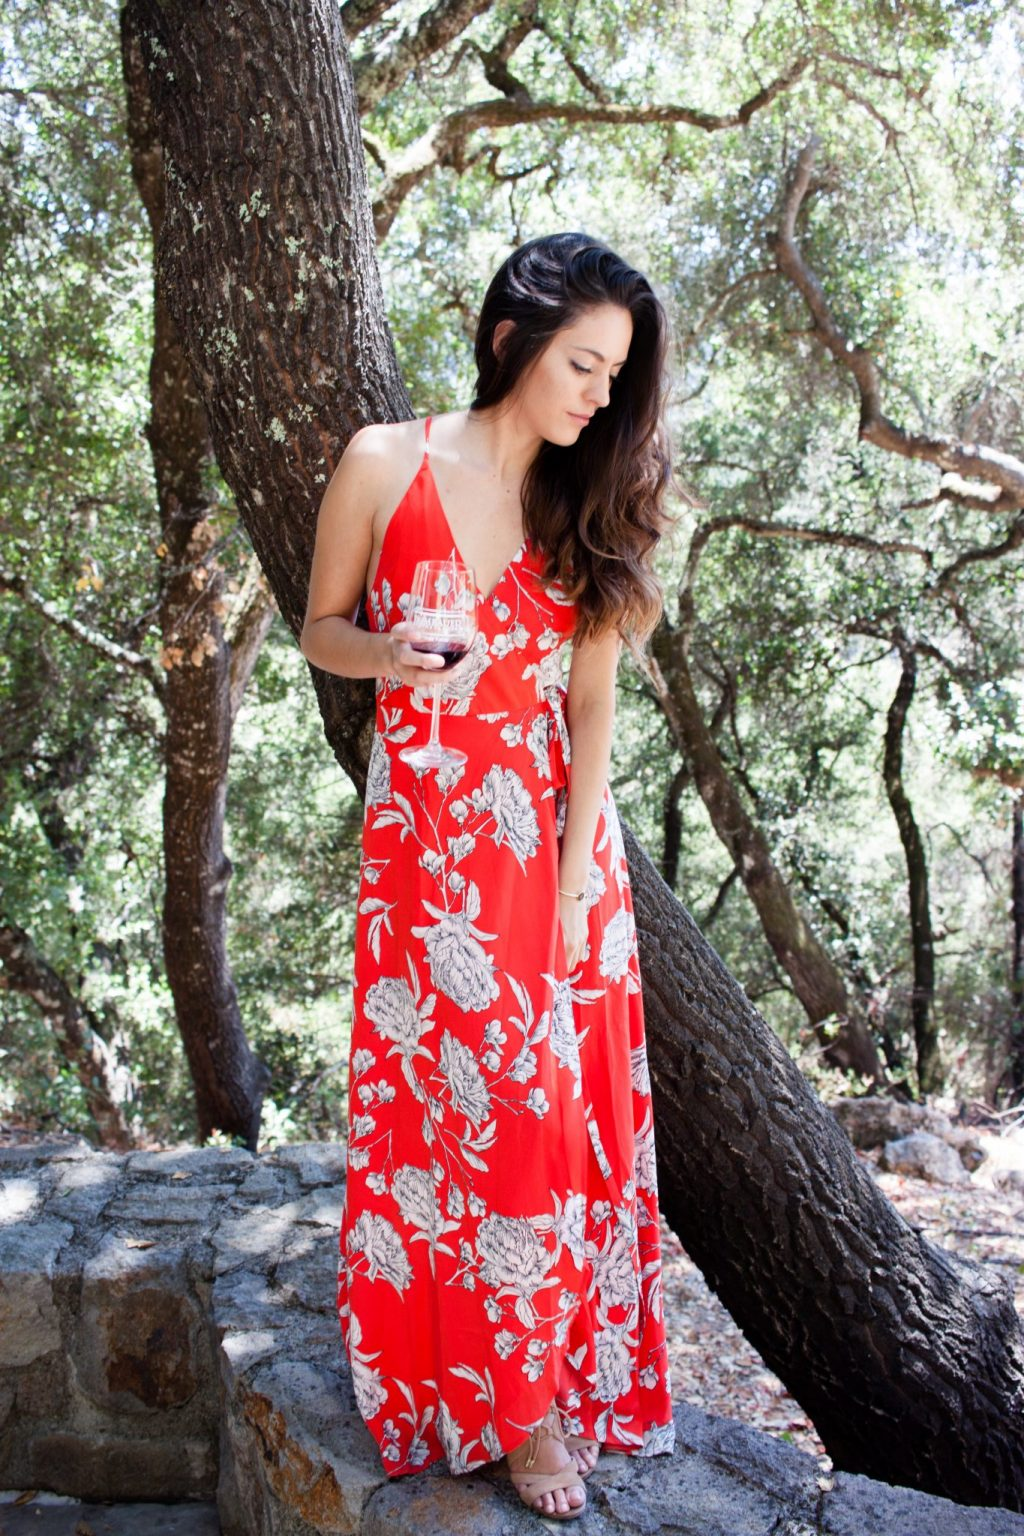 hall wines, rombauer winery, somerston estate wines, napa valley, wine country, what to wear in napa, maxi dress, yumi kim Rush Hour Maxi Dress in Red Carnation, Sam Edelman Yardley Lace Up Sandals, napa valley wineries, perata luxury tours